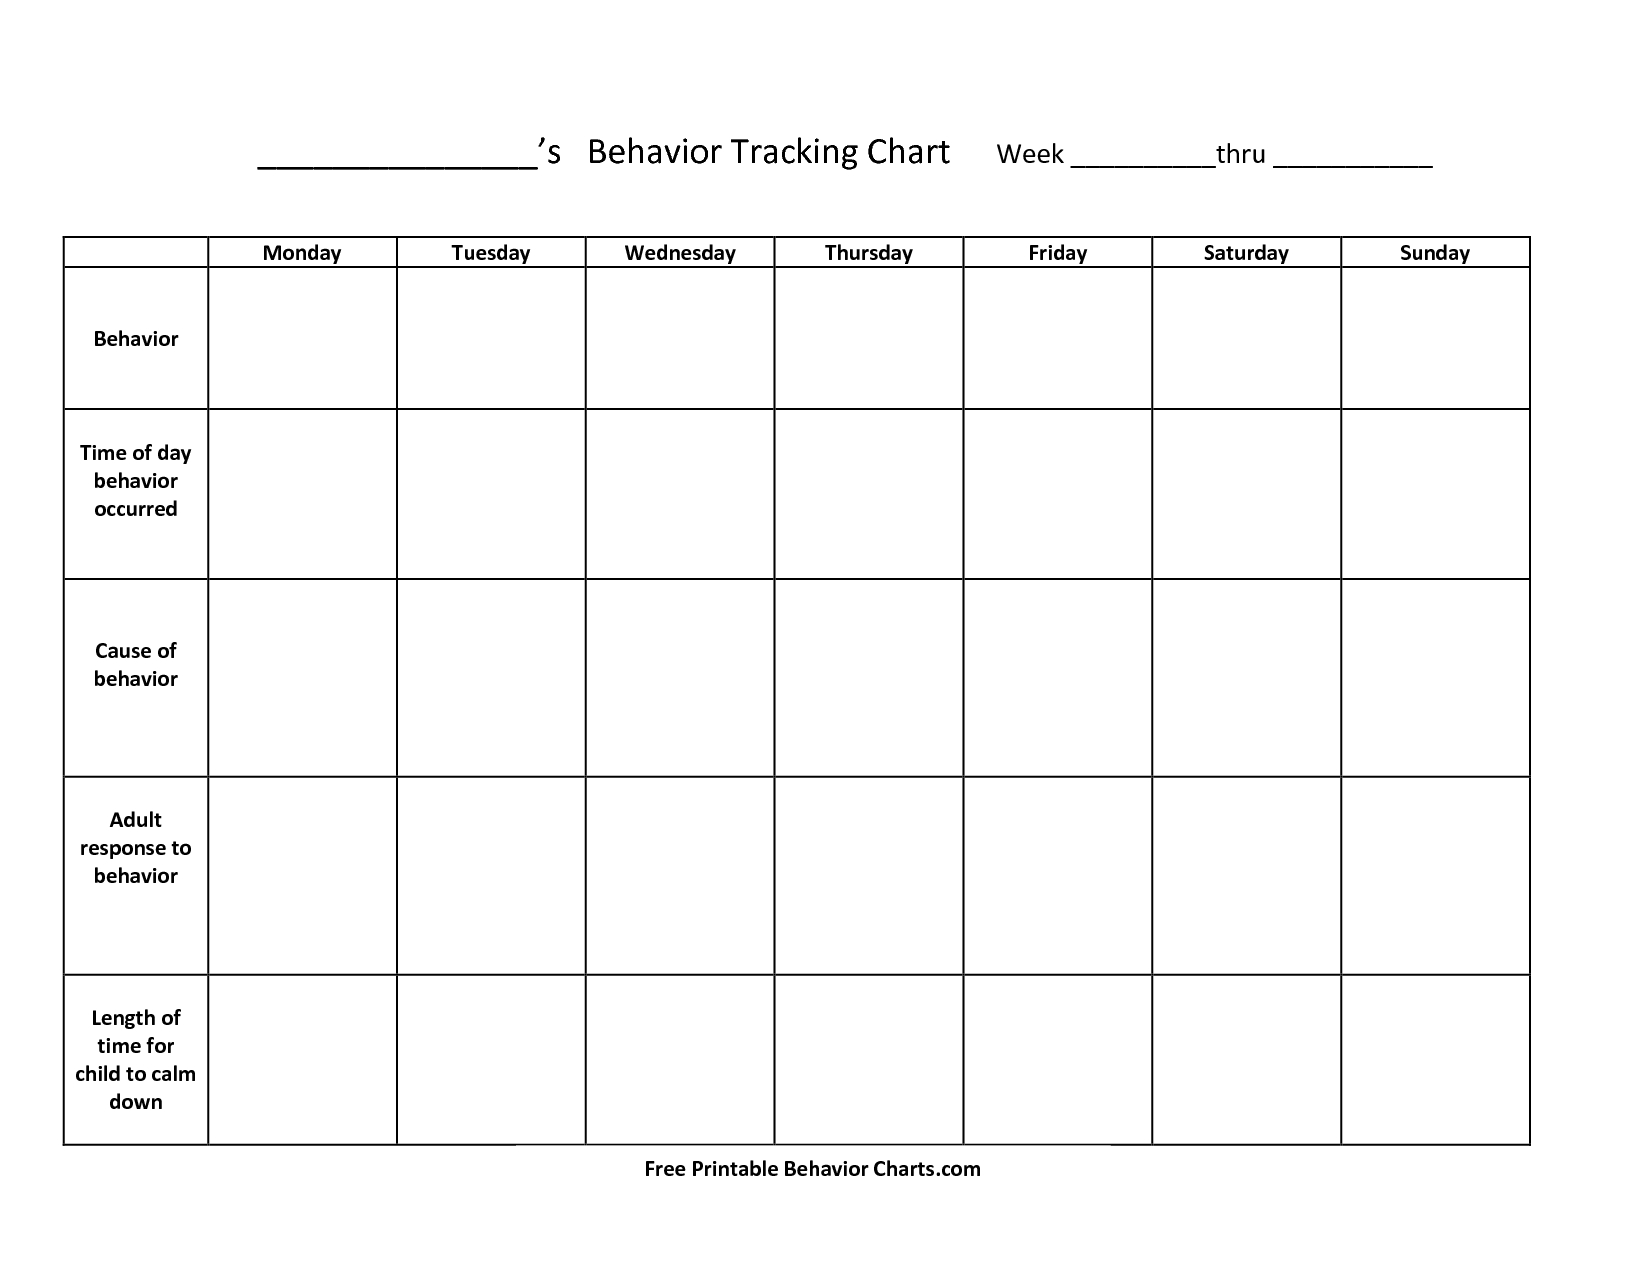 Free+Printable+Behavior+Charts+For+Teachers | Things To Try - Free Printable Incentive Charts For Teachers